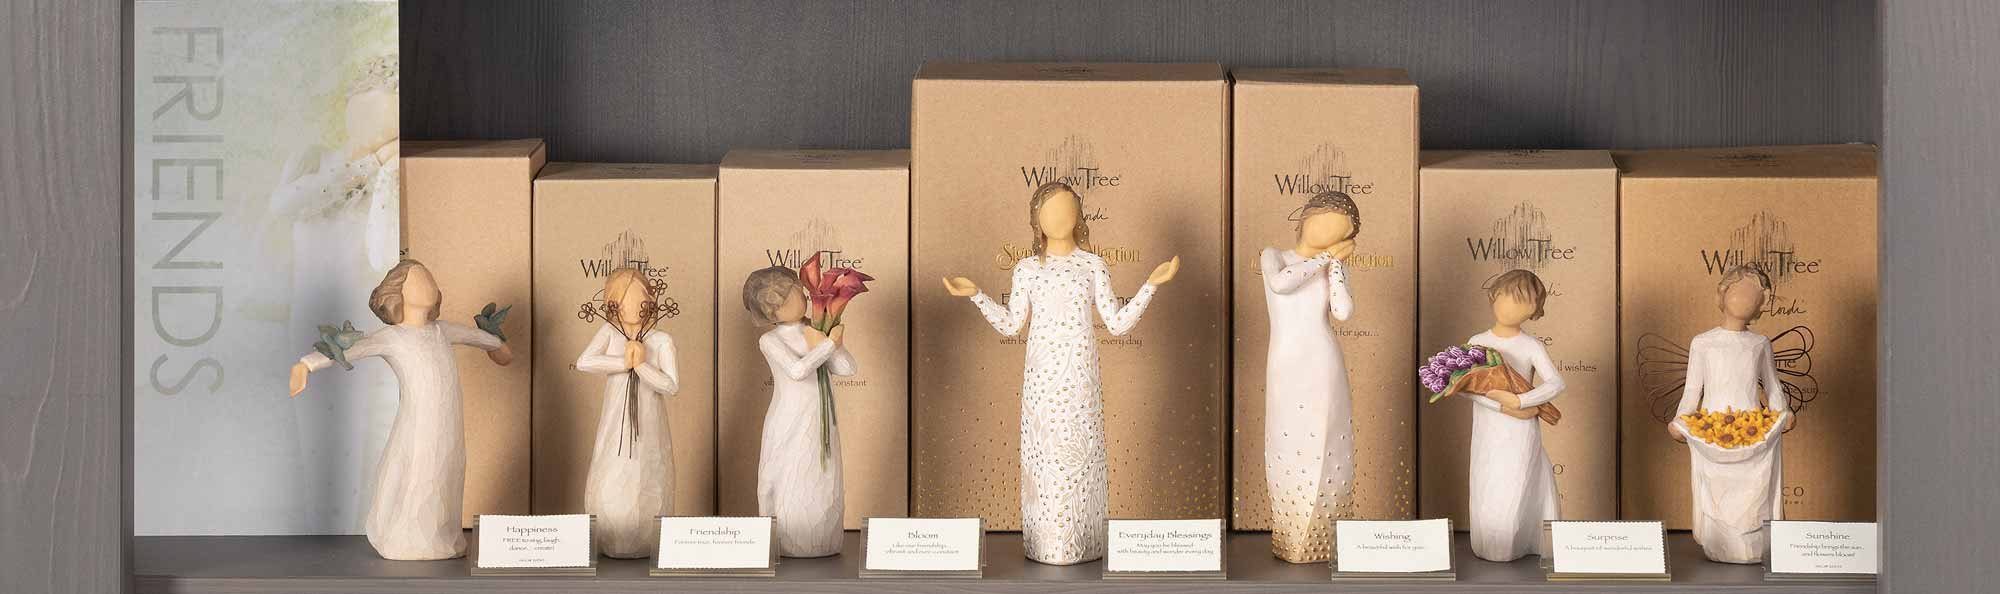 Willow Tree hand carved figures displayed on a store shelf with a sign that says FRIENDS